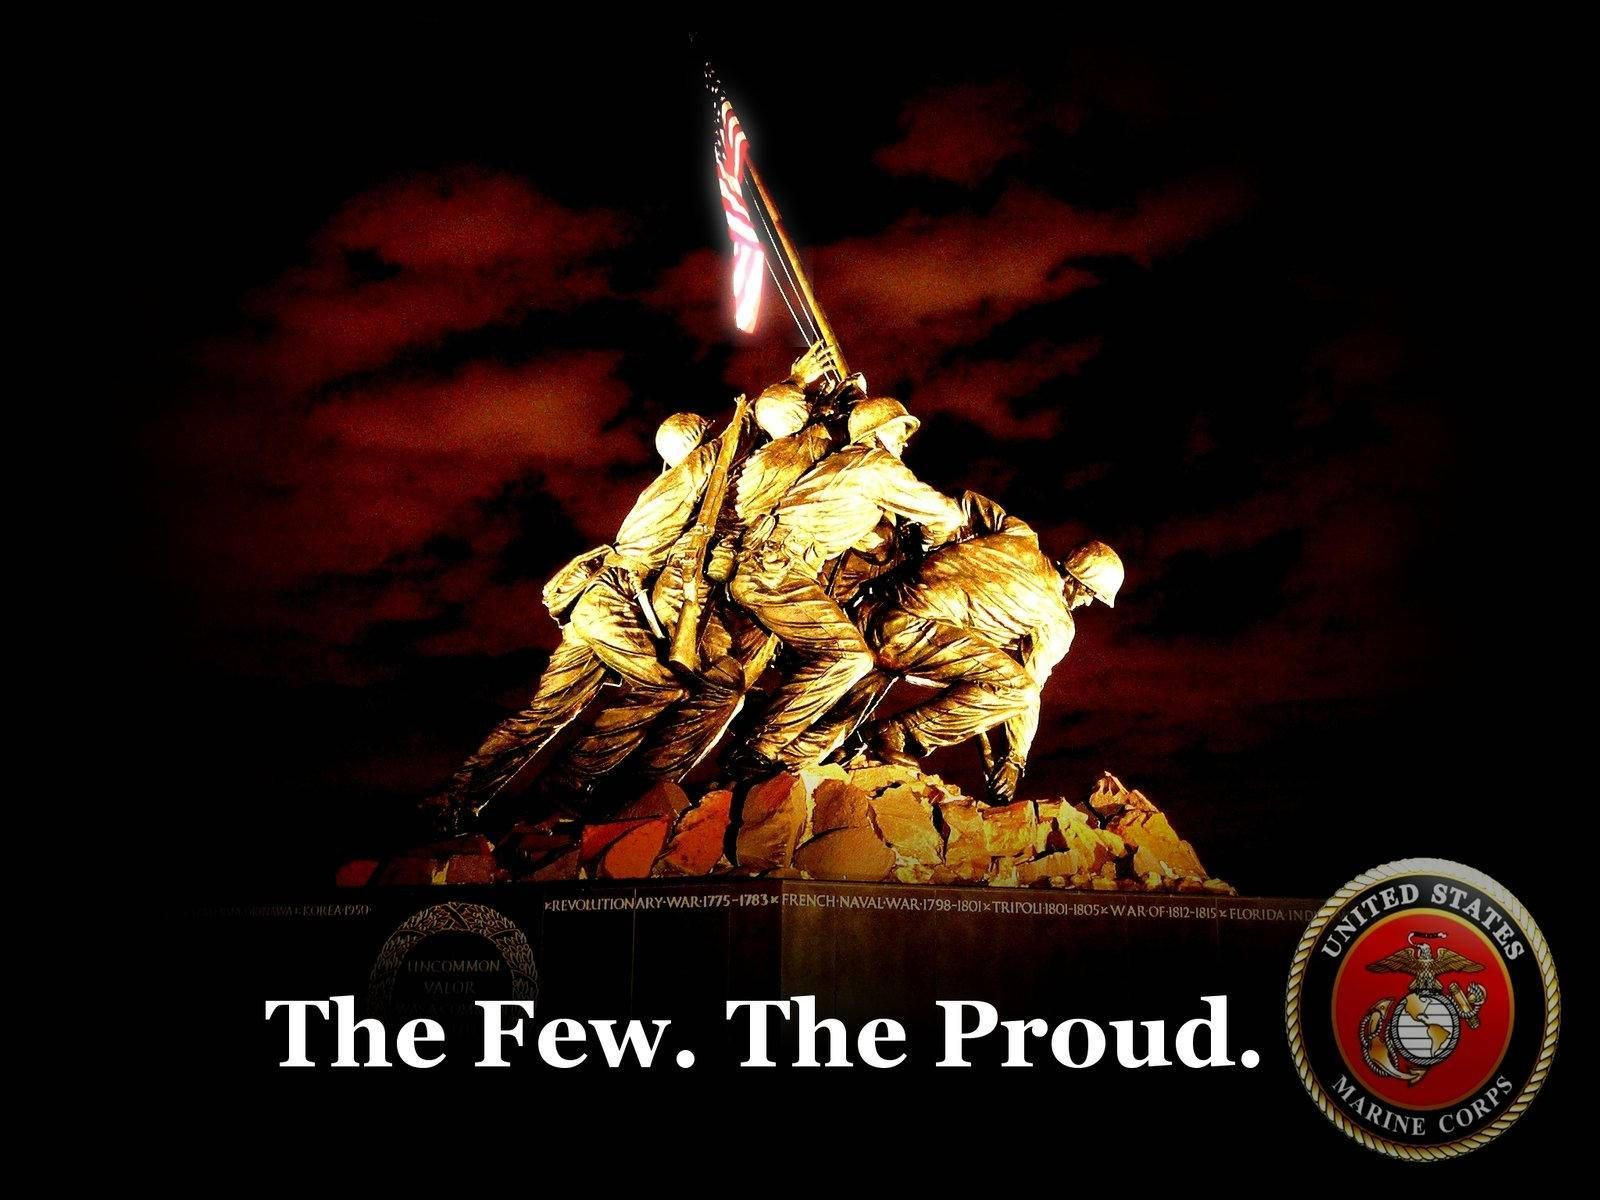 Cool Marine Corps Wallpaper Posted By Samantha Sellers